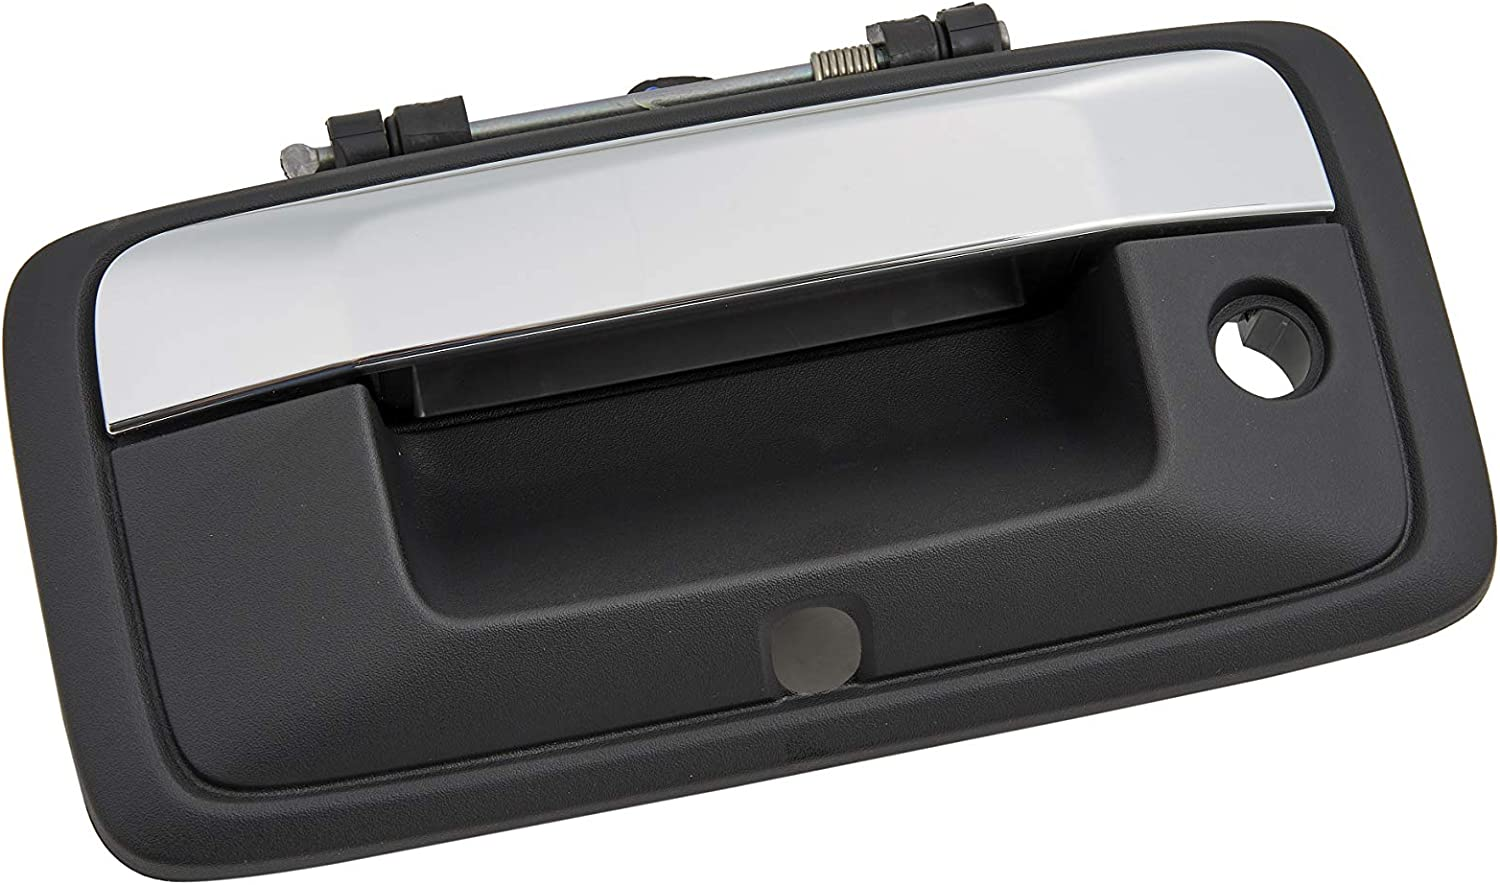 GM 35% OFF Accessories 84203904 Tailgate High quality Handle with Chrome Assembly in